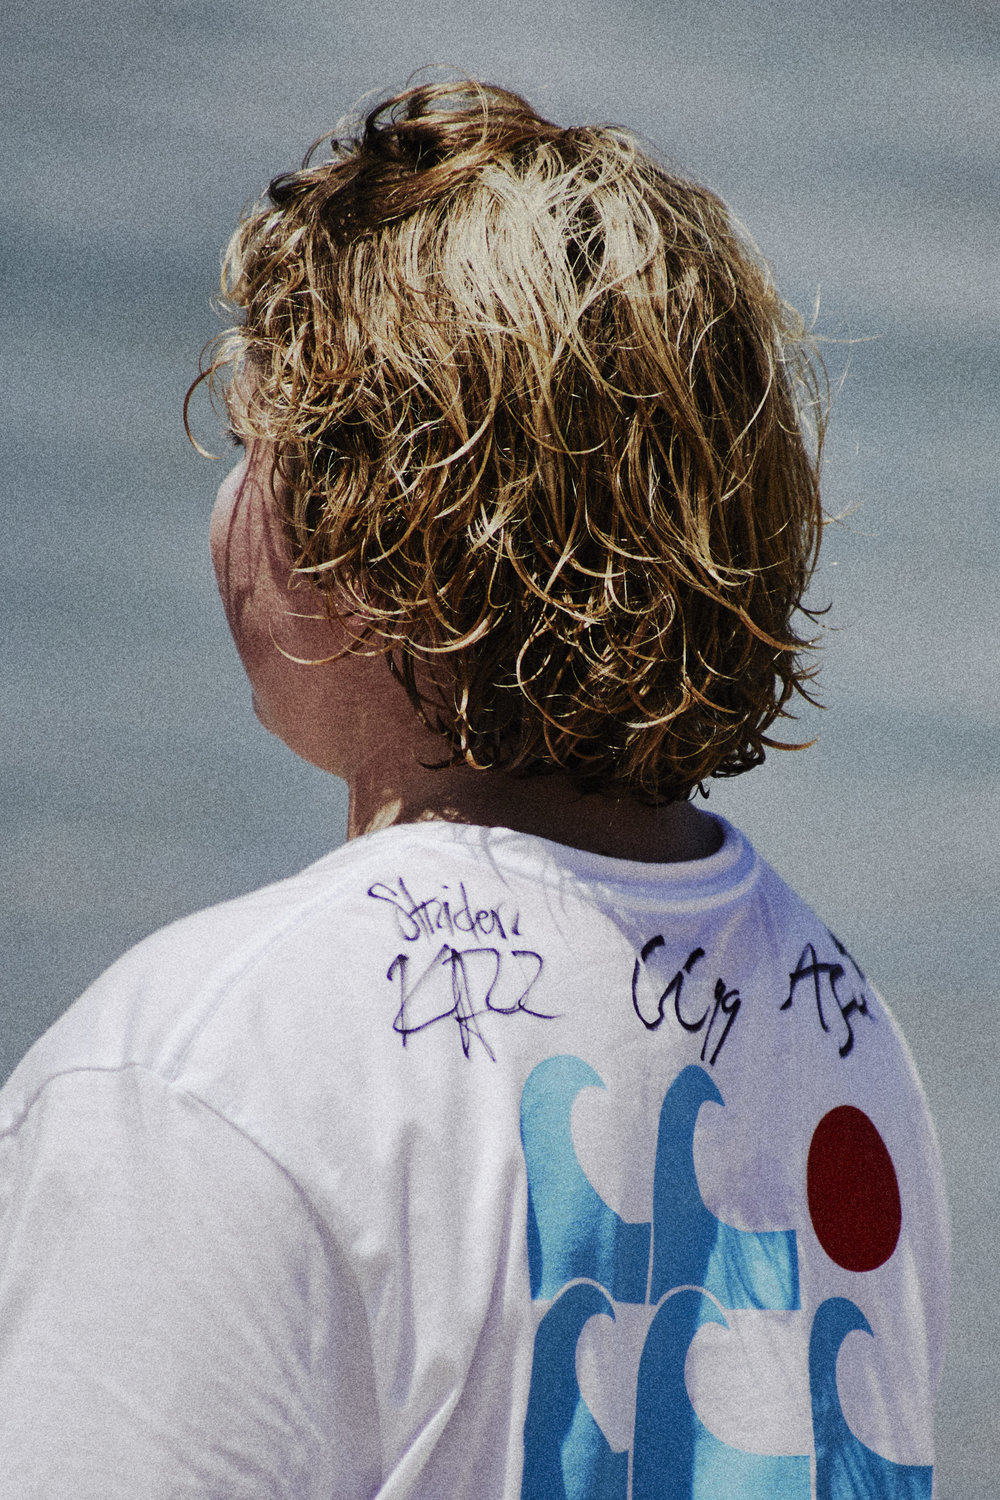 Huntington_Vans_US_Surf_Open_273.jpg